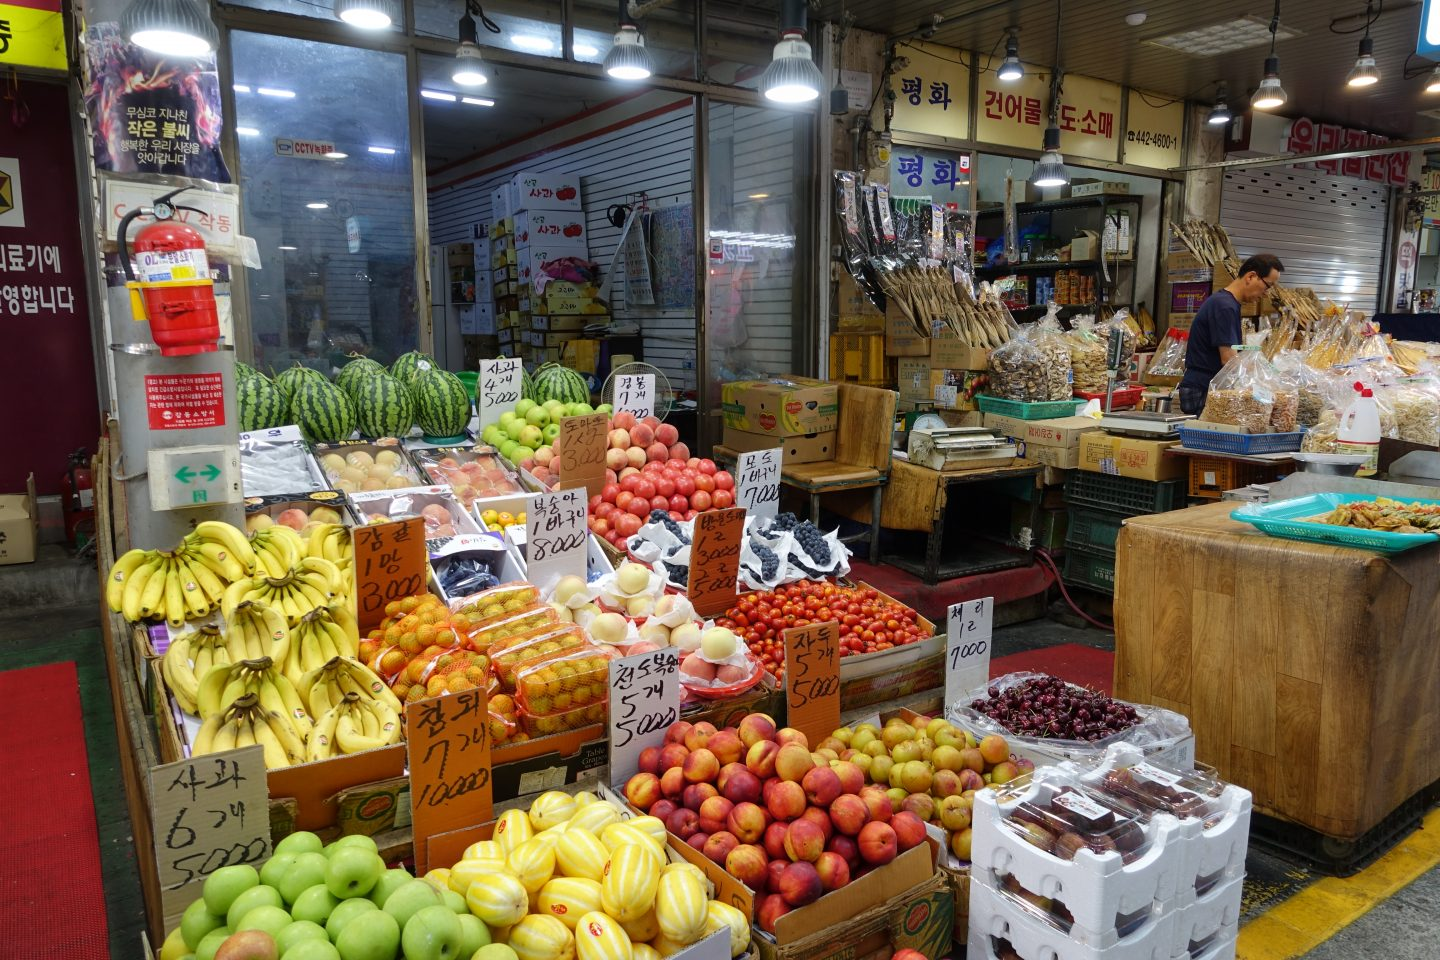 How Much Does It Cost To Travel In South Korea? - The